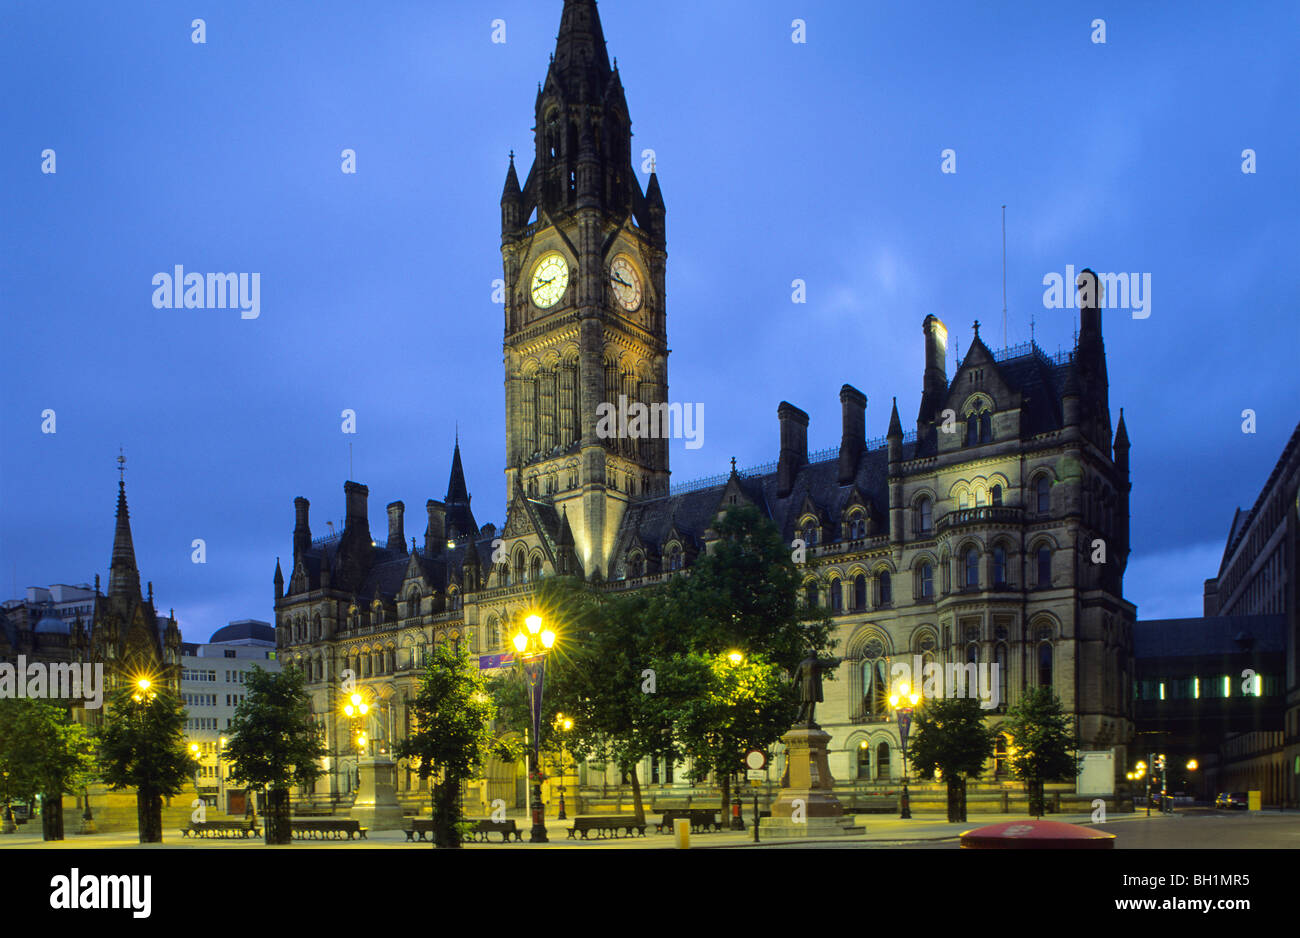 Europe, Great Britain, England, Greater Manchester, Manchester, Town Hall - Stock Image